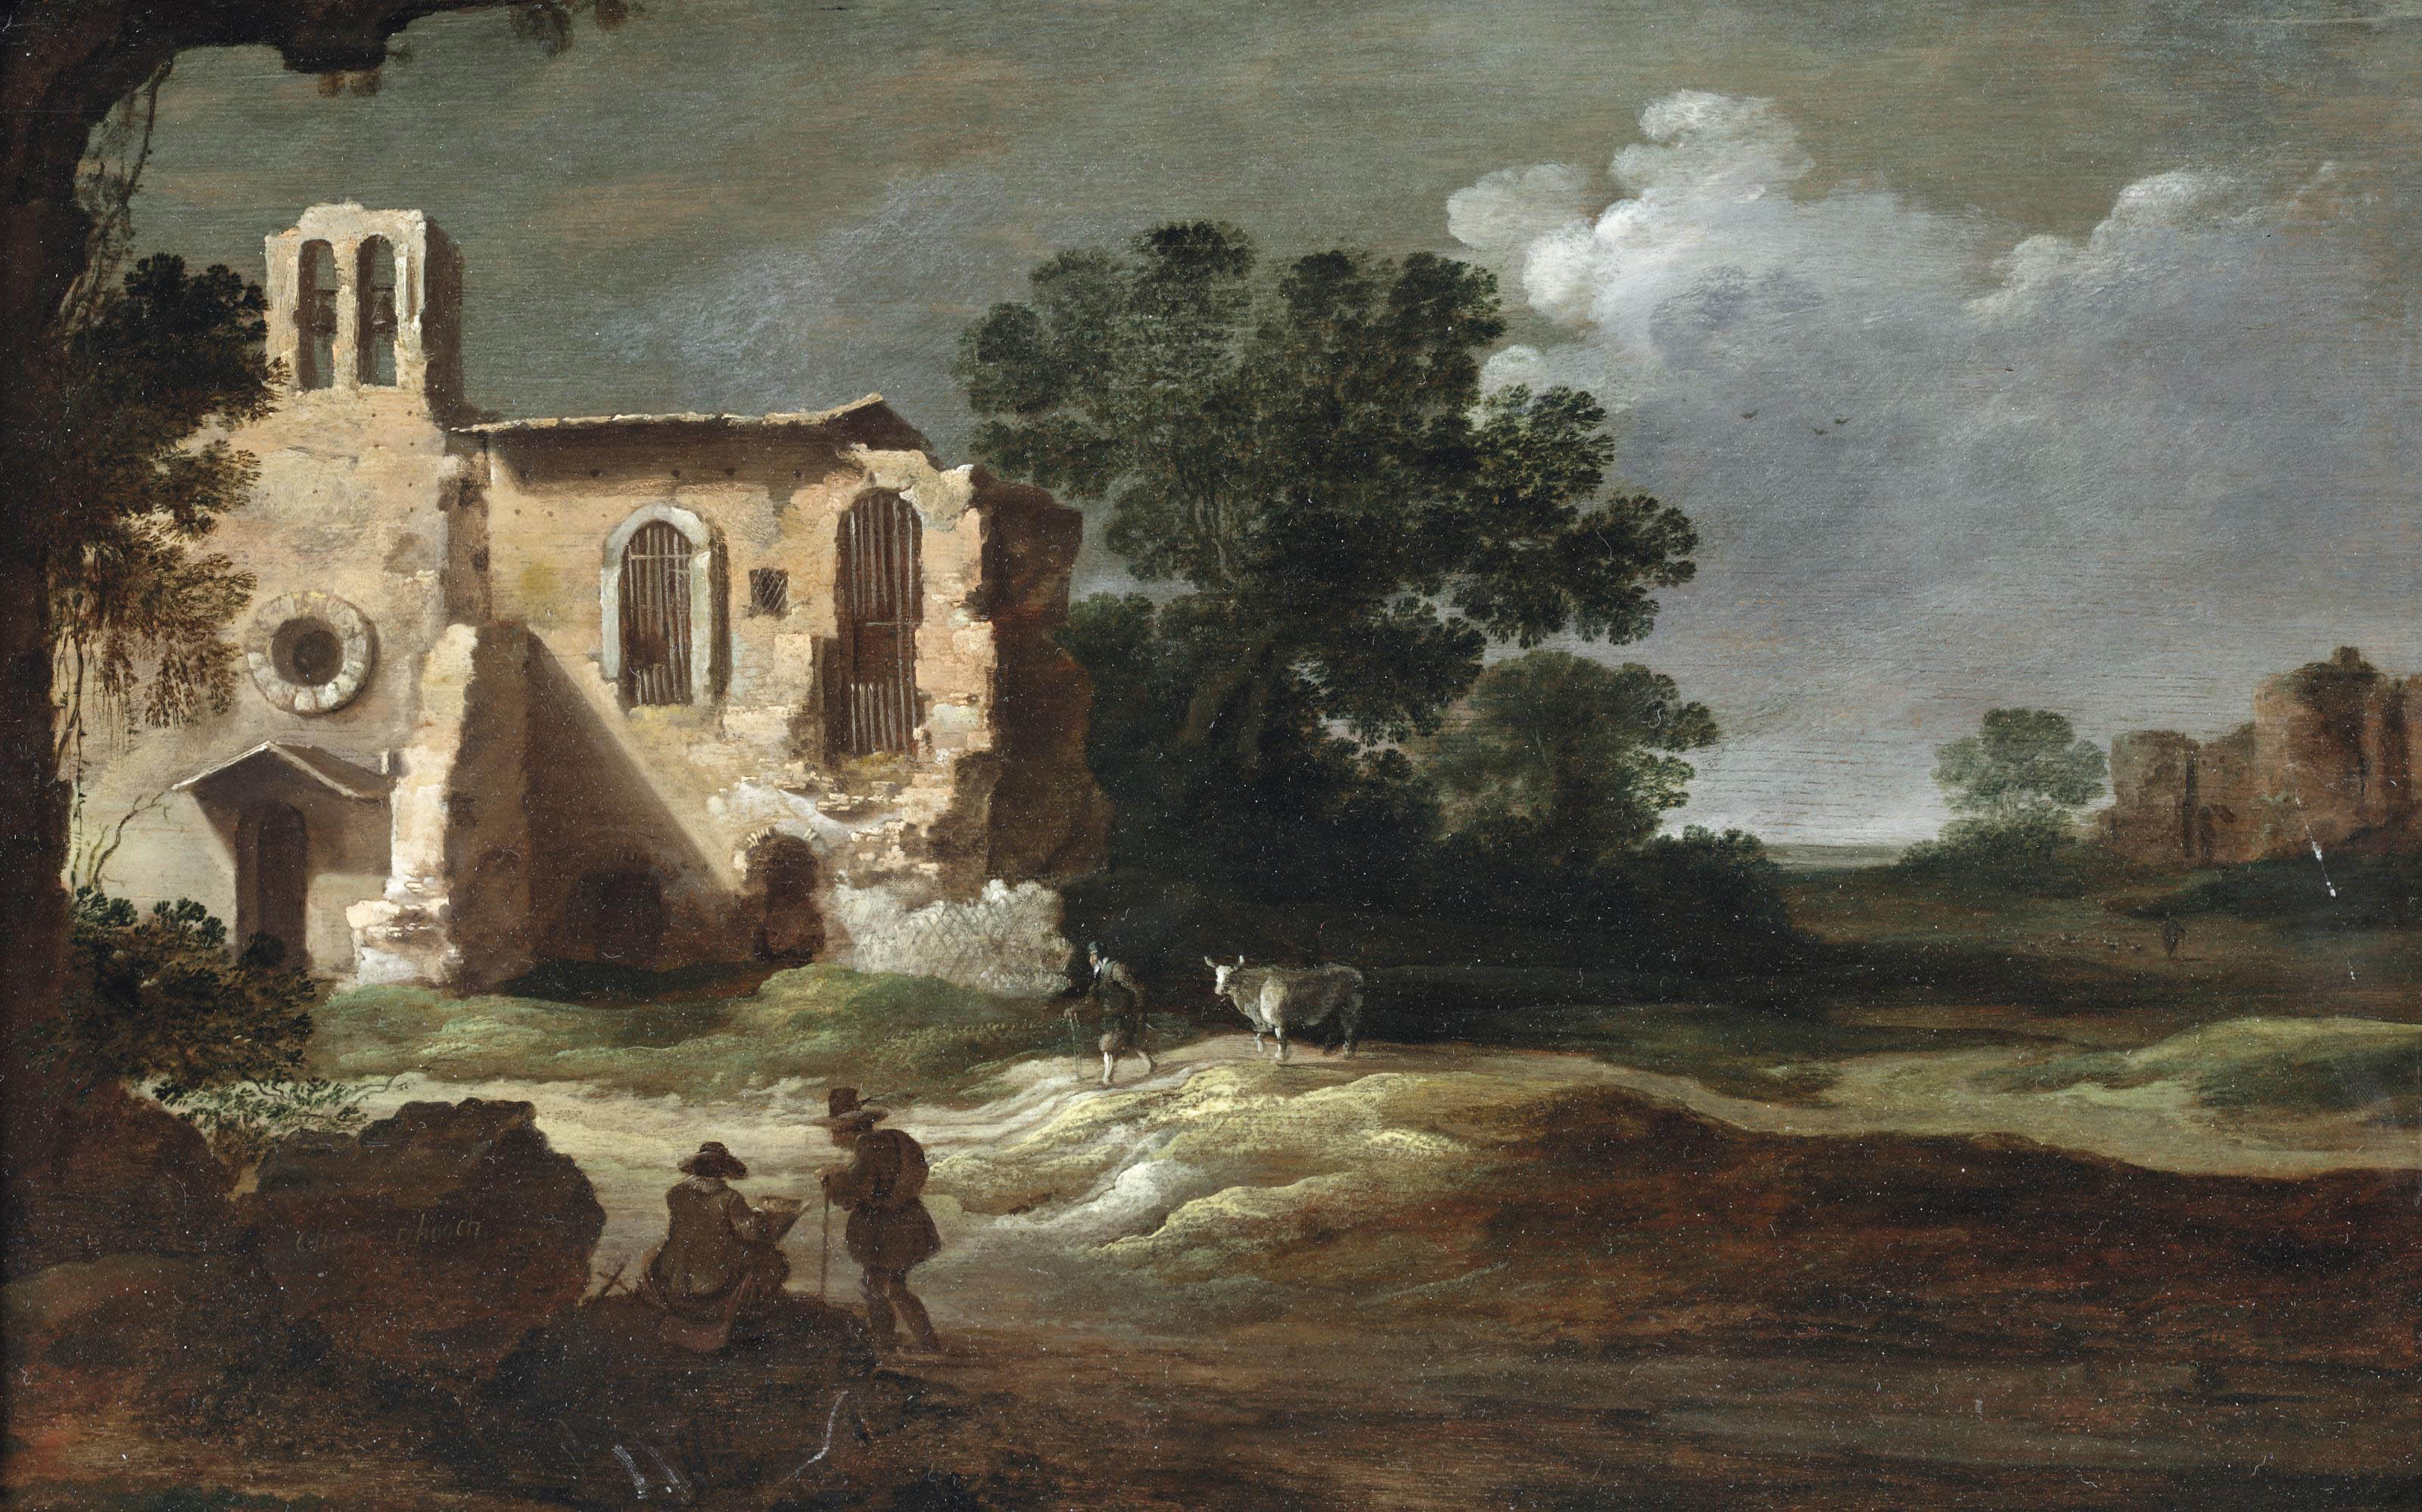 An Italianate landscape with figures by classical ruins